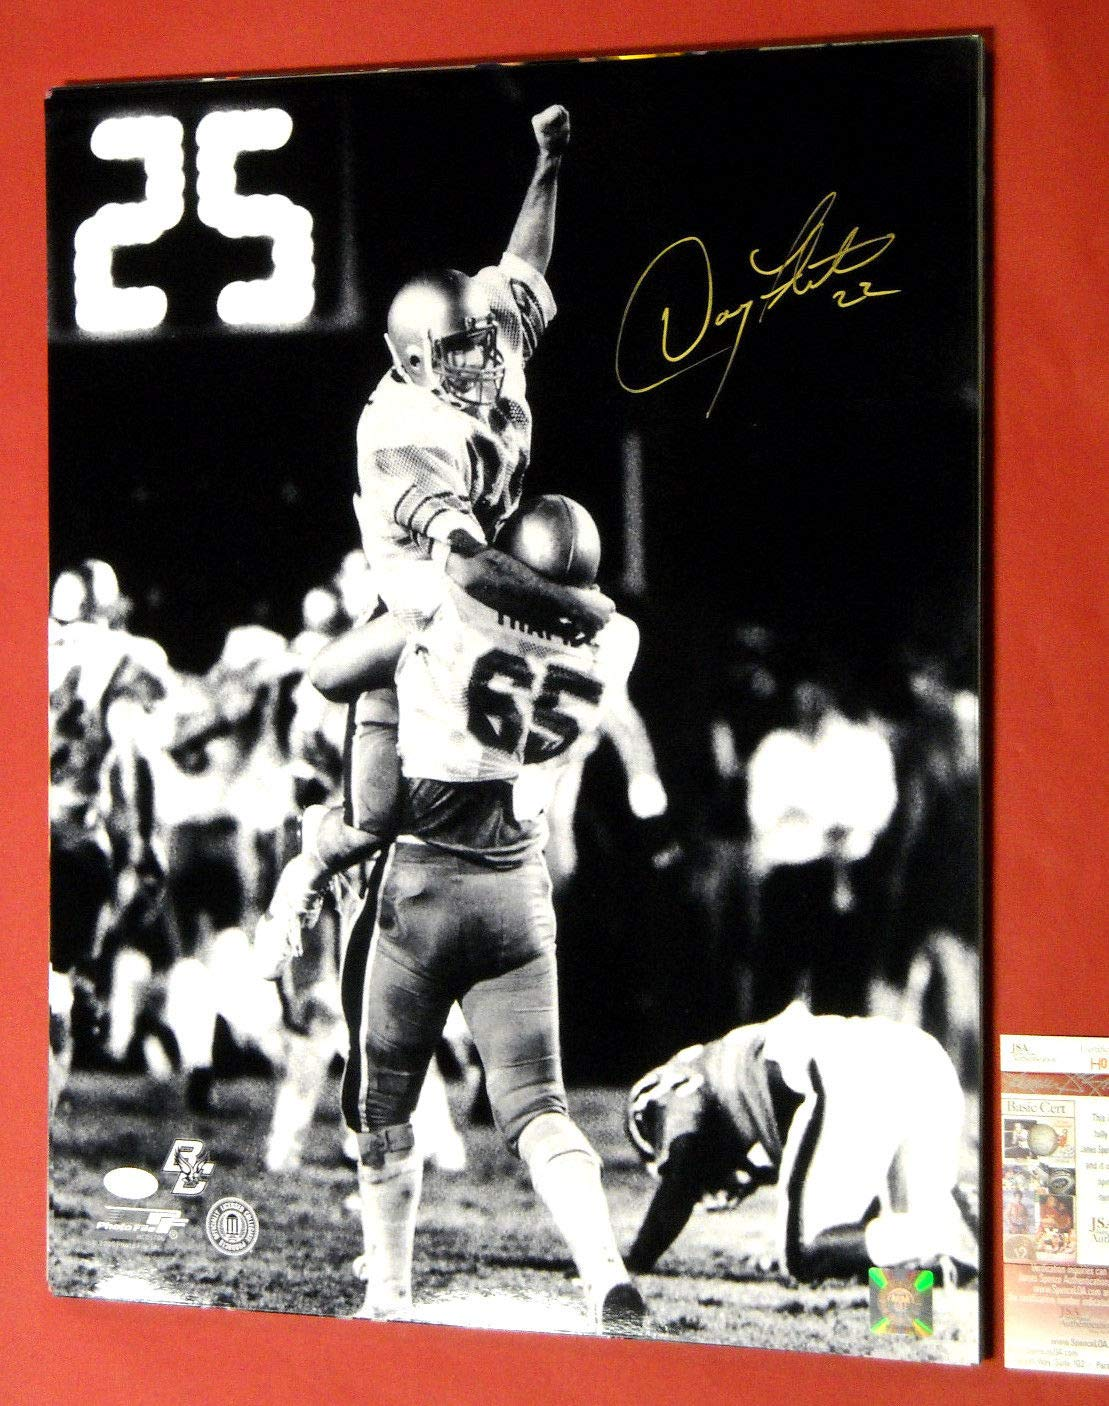 DOUG FLUTIE AUTOGRAPHED BOSTON COLLEGE EAGLES B&W 16X20 JSA